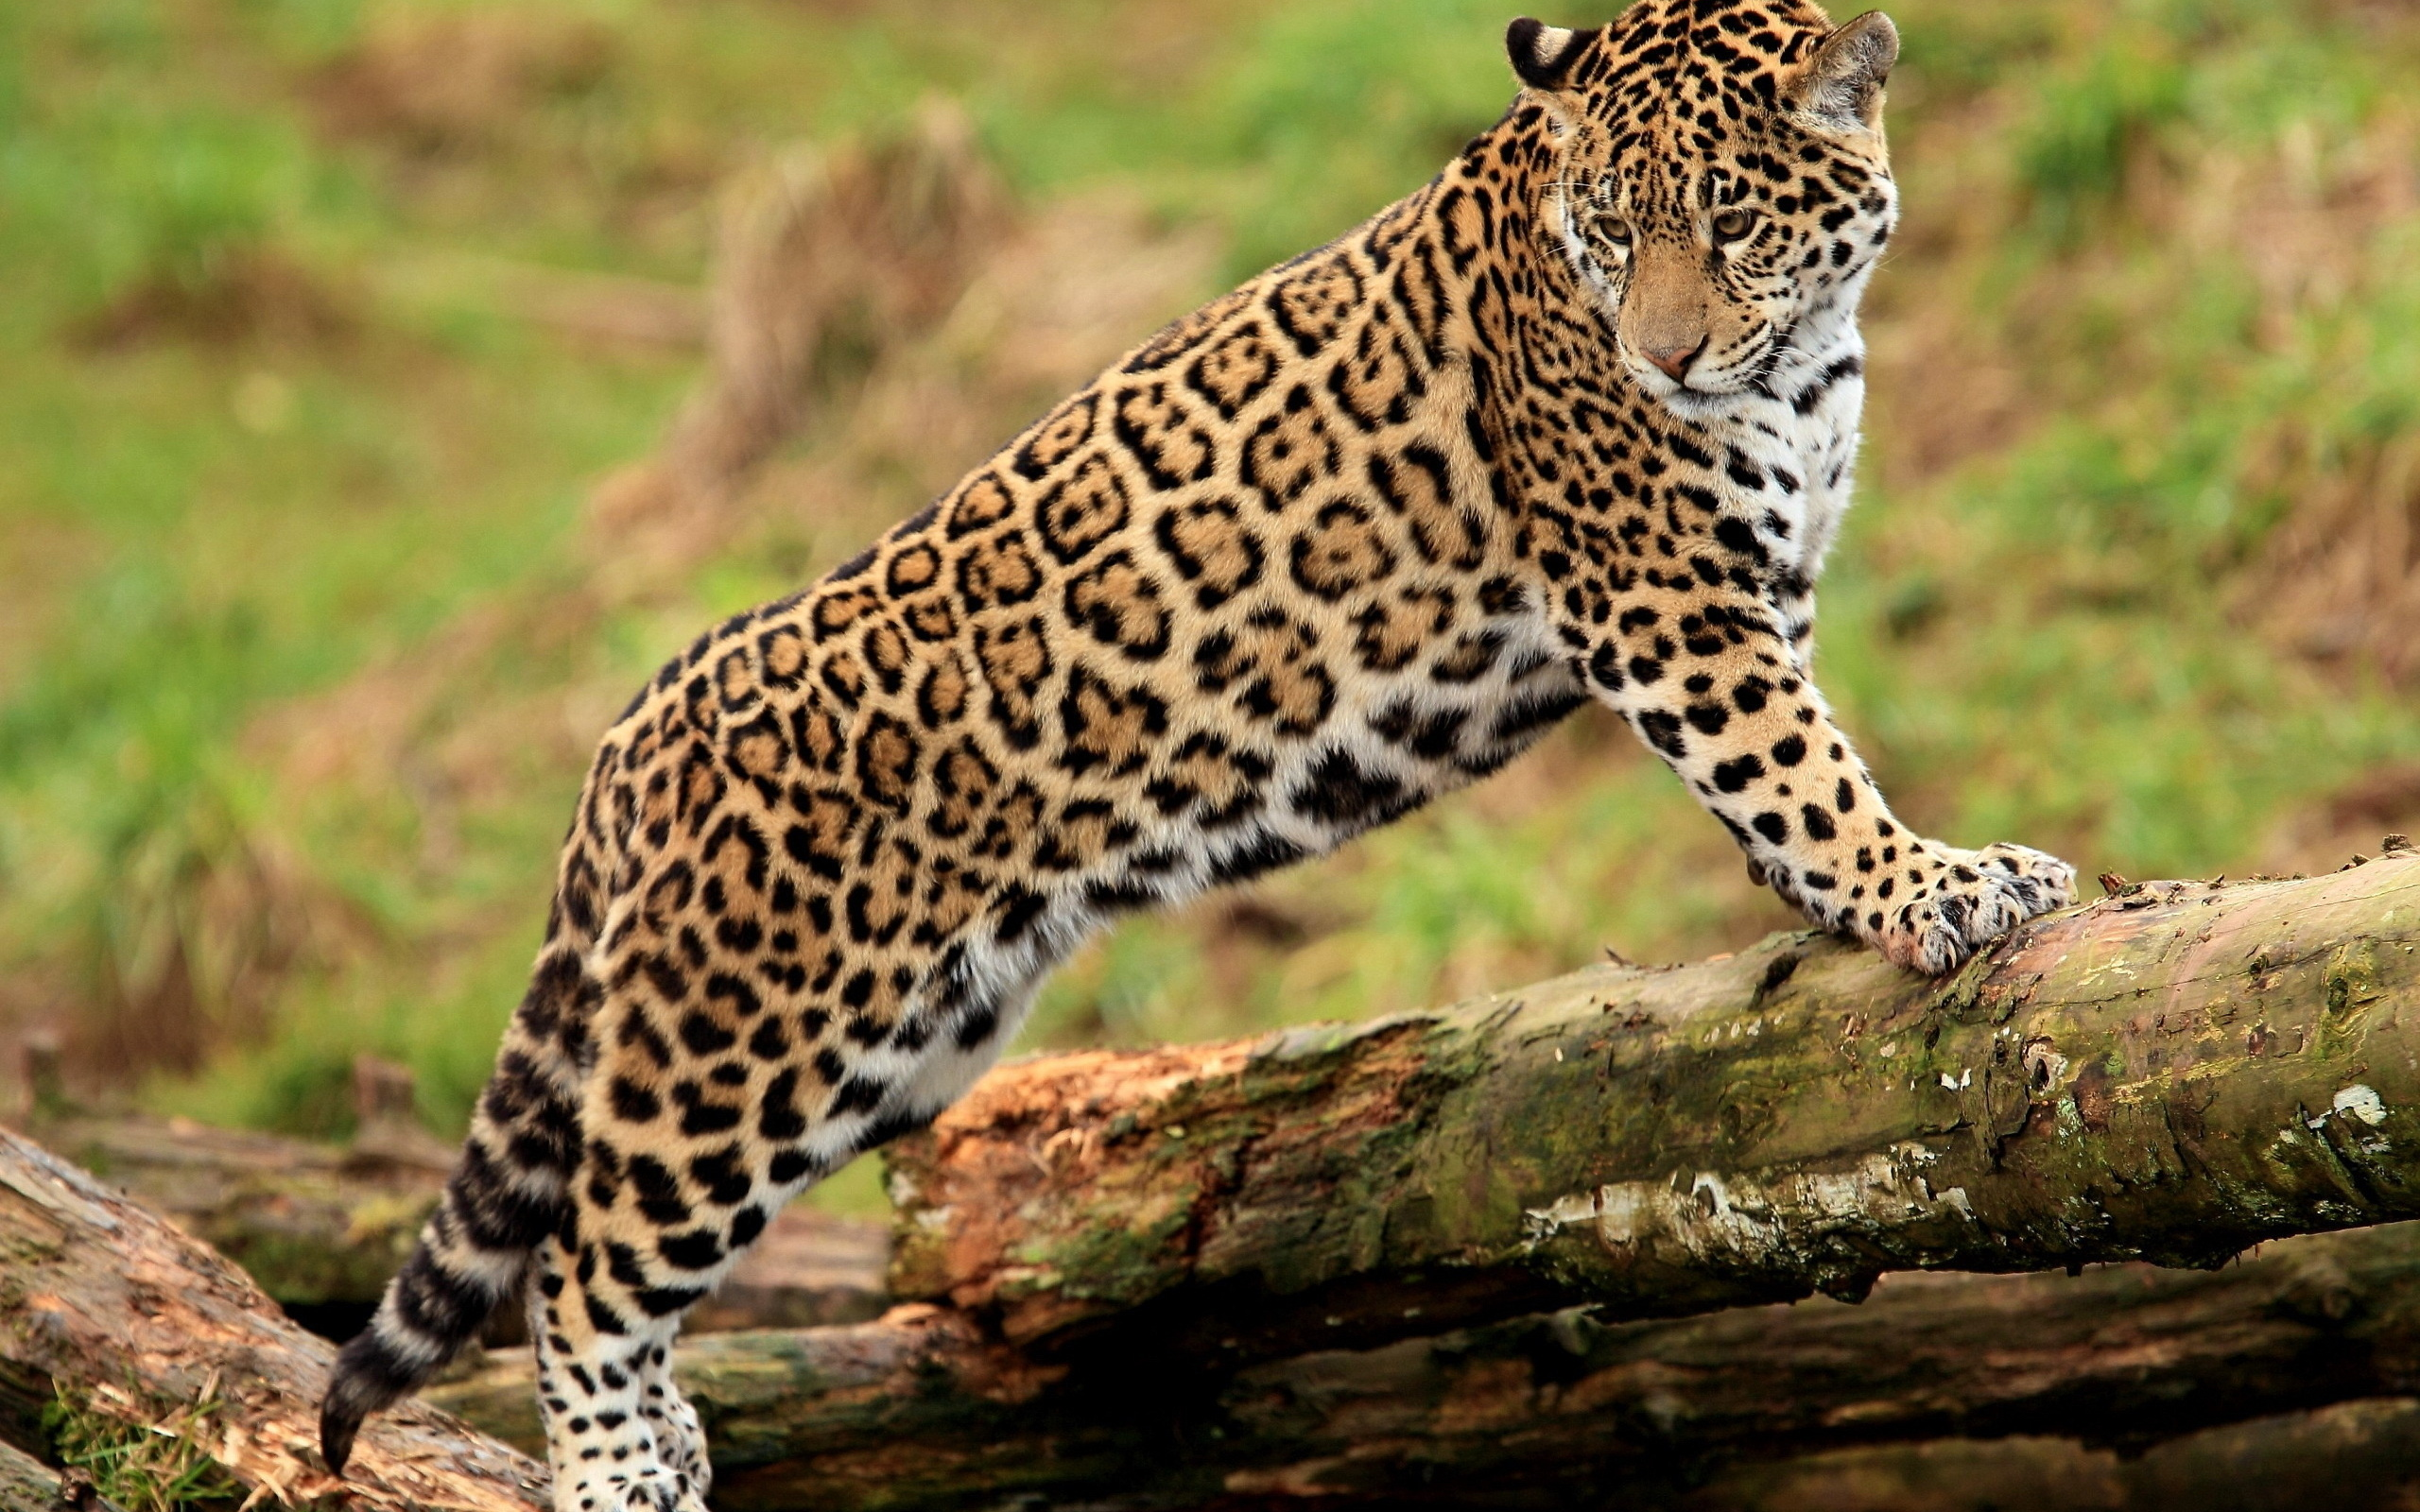 Animals Jaguars Wallpapers Hd Desktop And Mobile: Jaguar Wallpaper Beautiful - HD Desktop Wallpapers